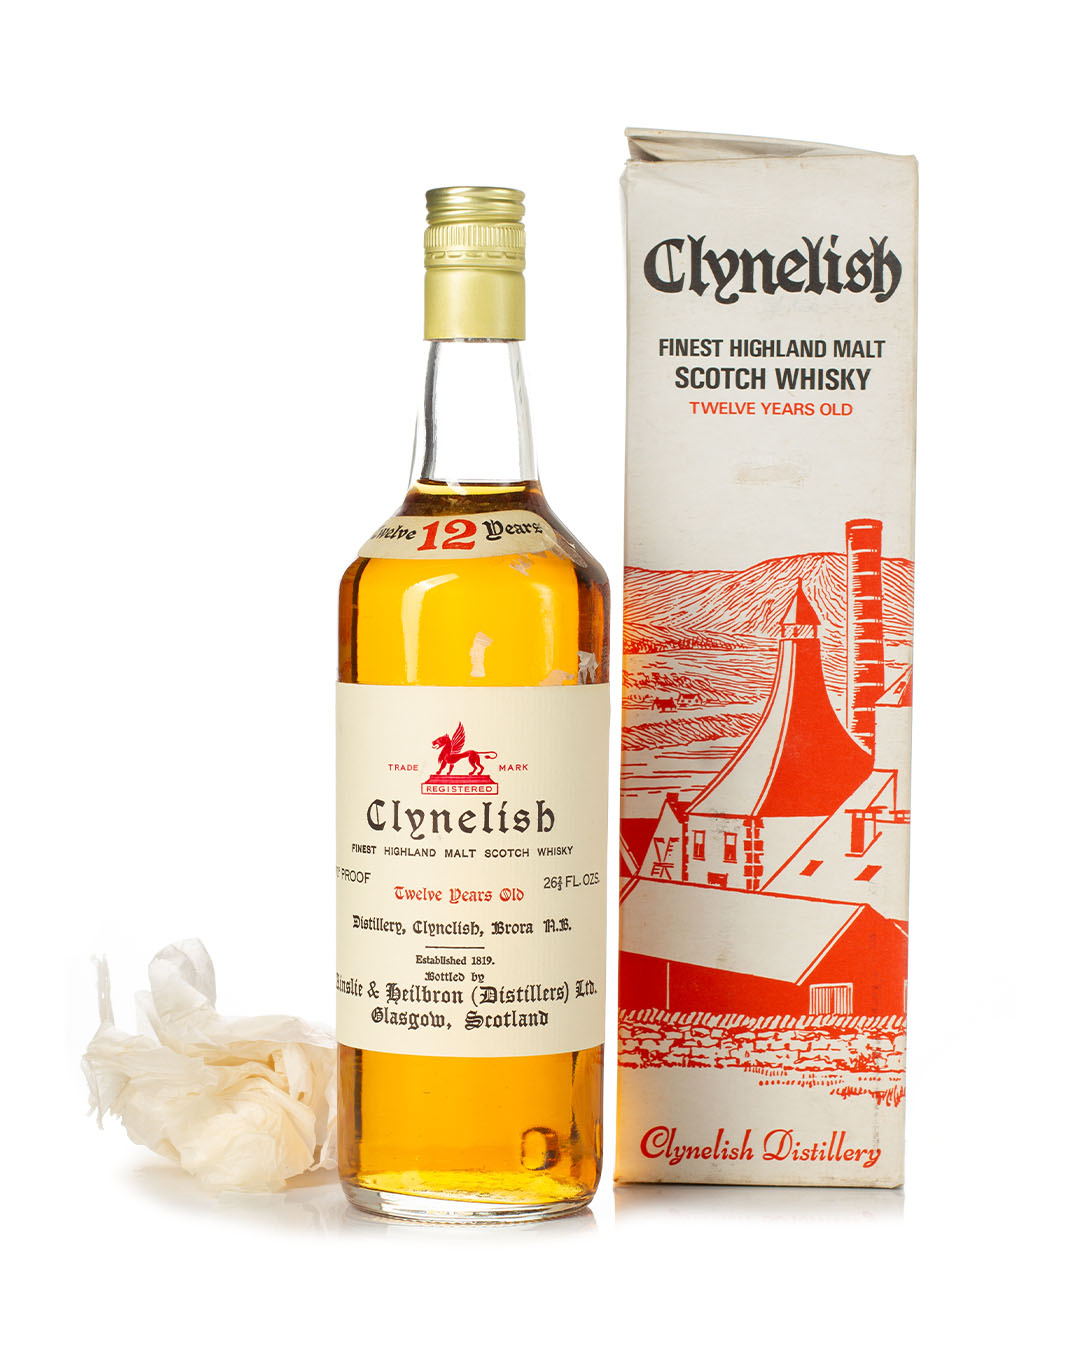 Buy Clynelish 12 year old 70 proof Ainslie & Heilbrown bottle and box